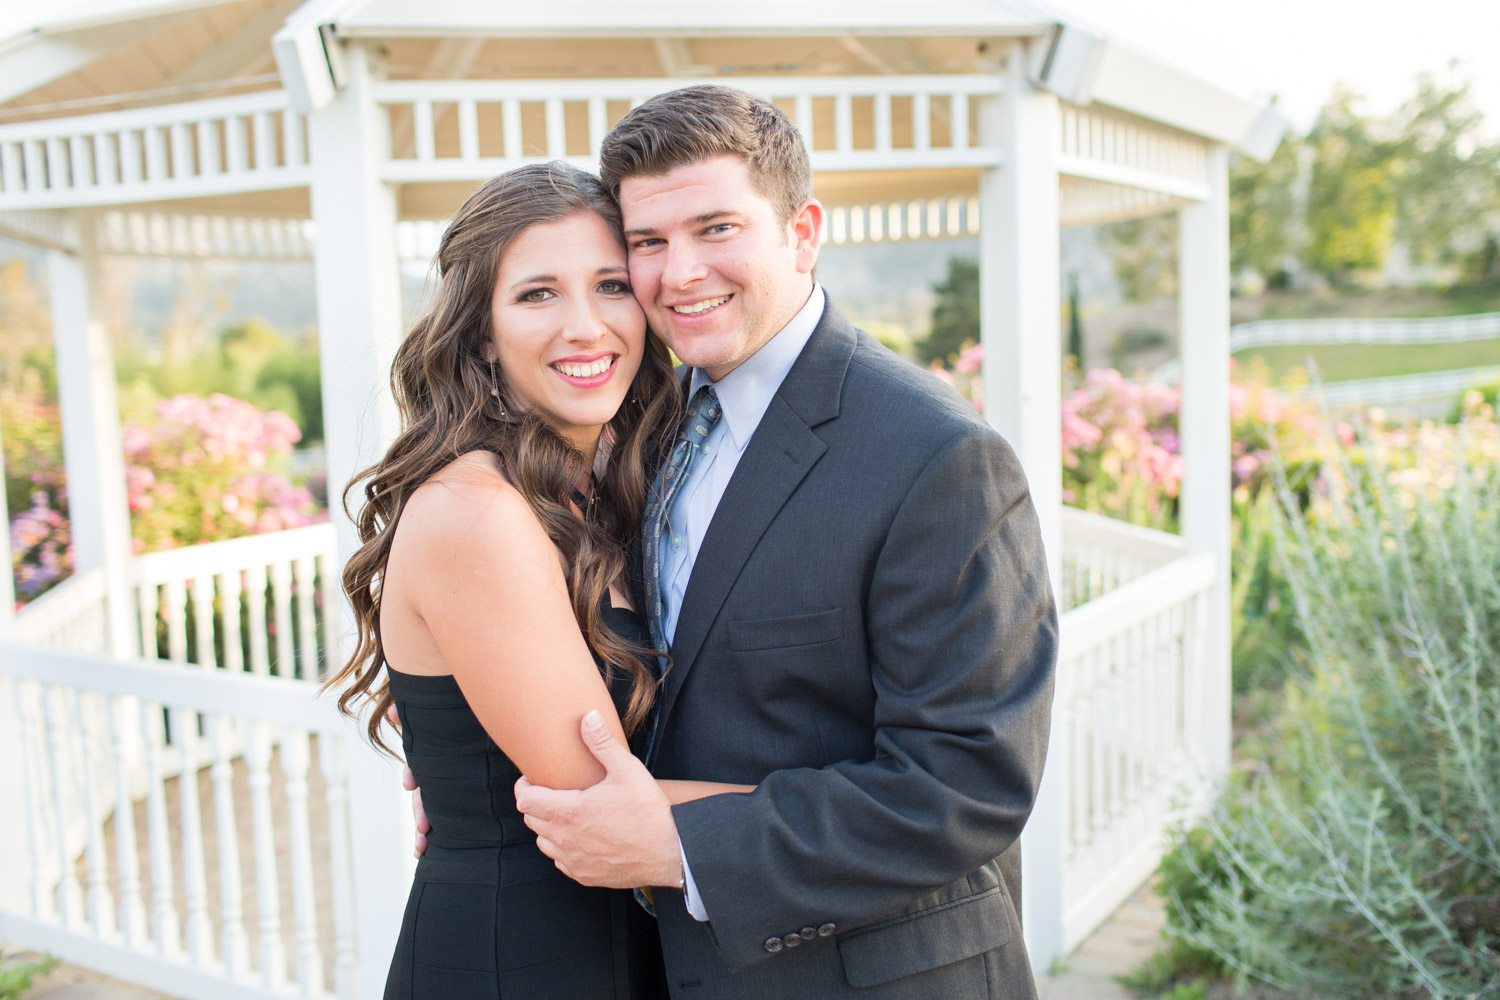 Black dress engagement photos -  Couple By A Gazebo Wearing A Black Dress And A Suit Rose Haven Heritage Garden